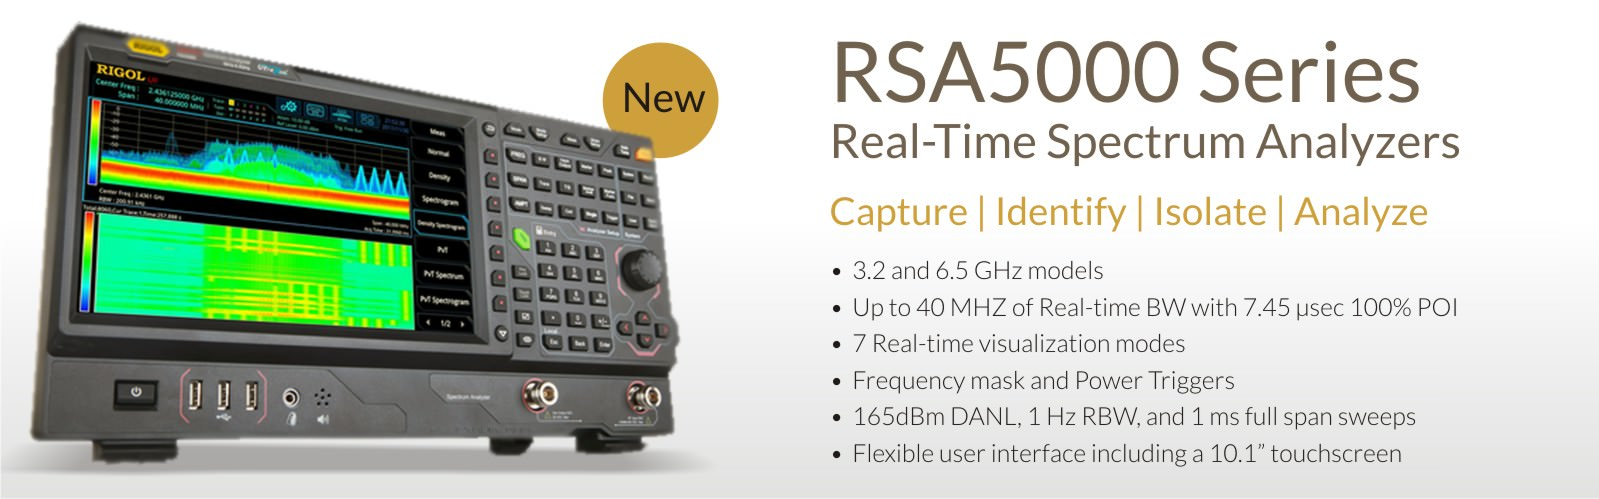 Real Time Spectrum Analyzer RSA 5000 Series